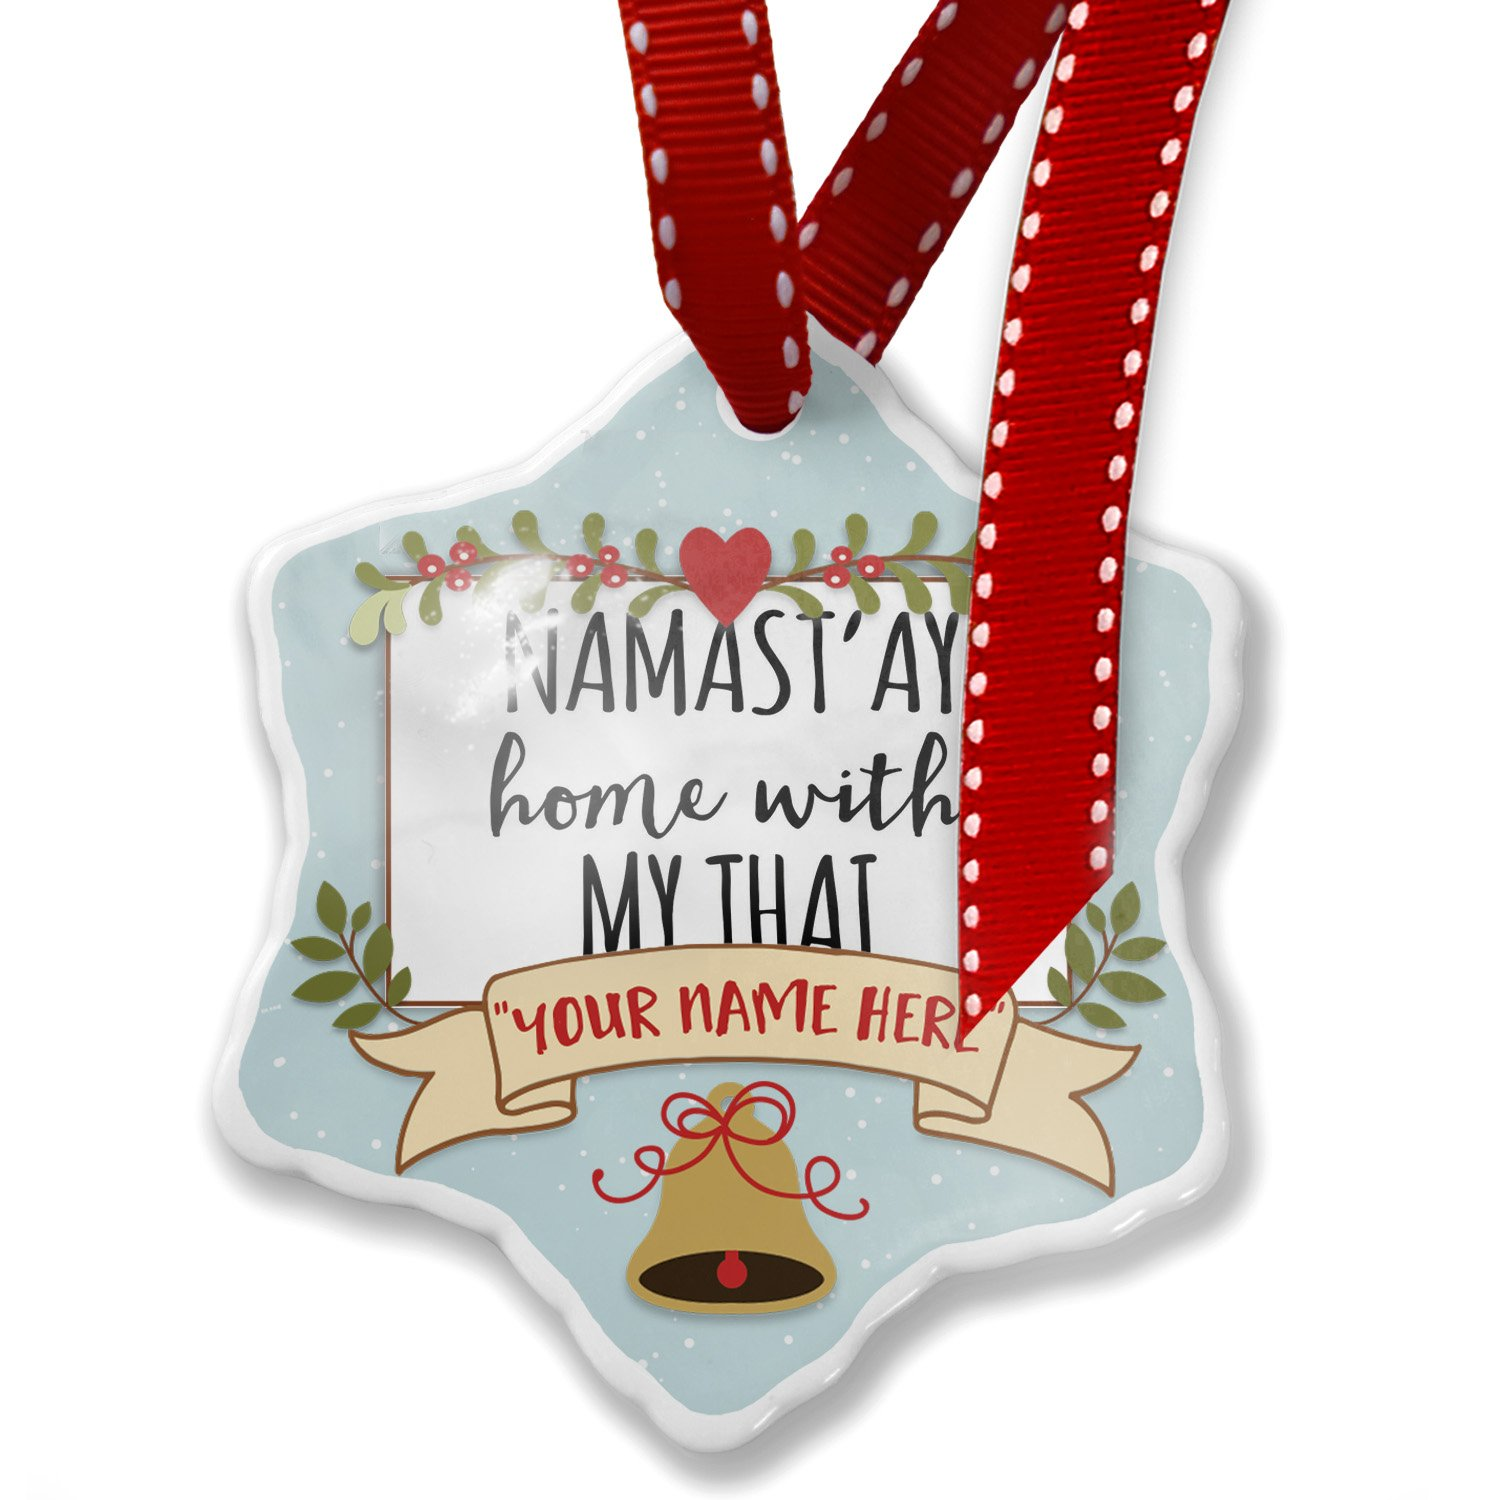 Add Your Own Custom Name, Namast'ay Home With My Thai Simple Sayings Christmas Ornament NEONBLOND by NEONBLOND